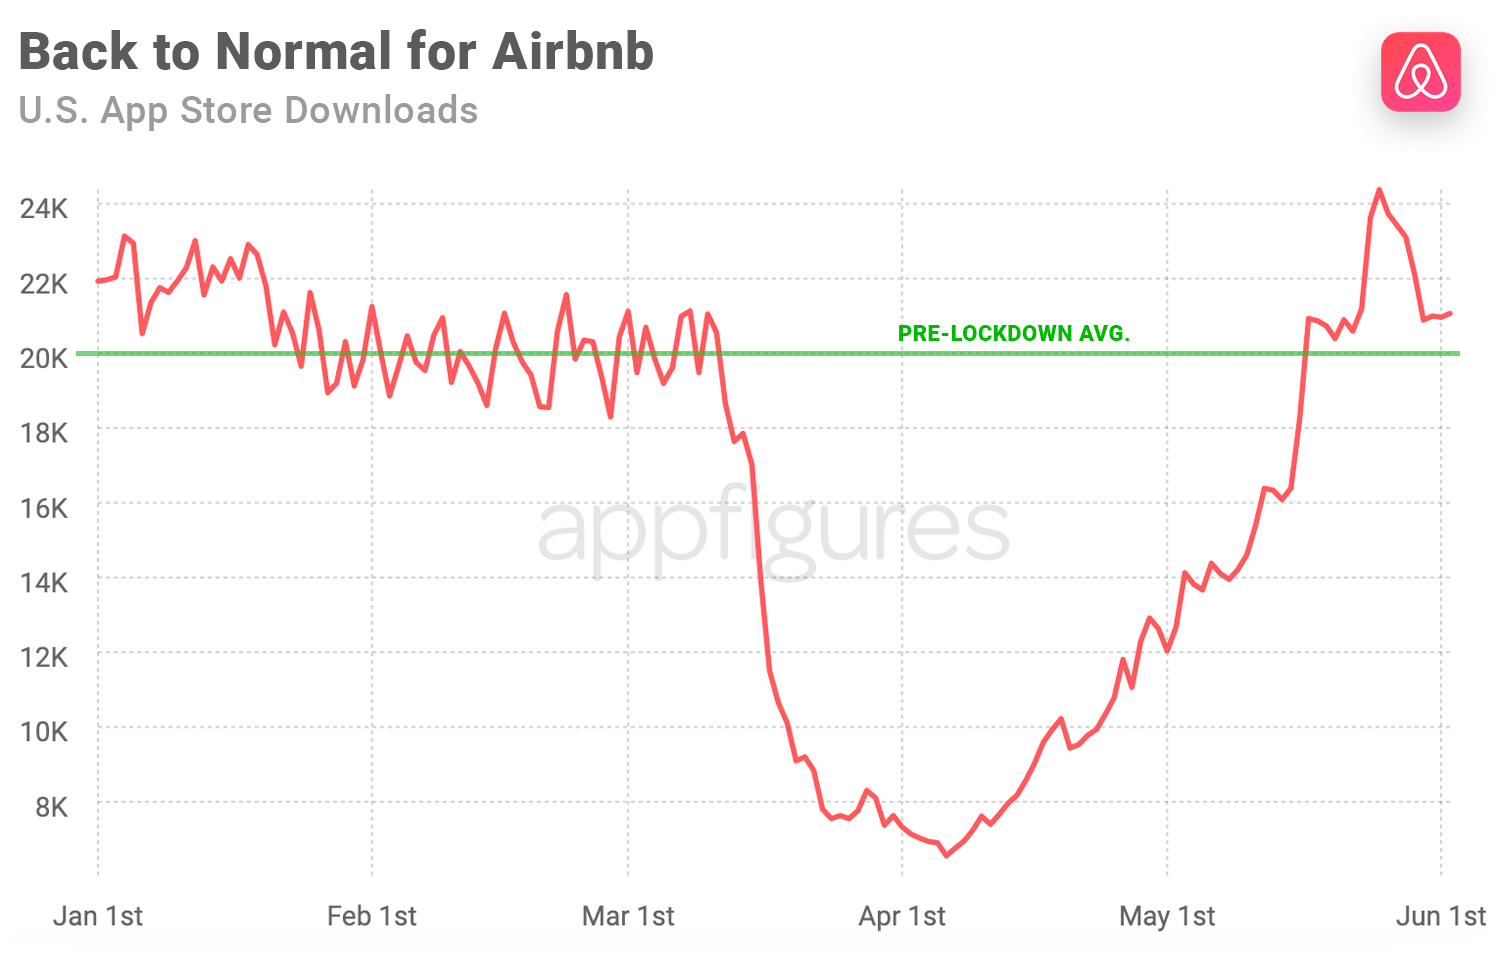 Airbnb's downloads recover from COVID in the U.S. App Store